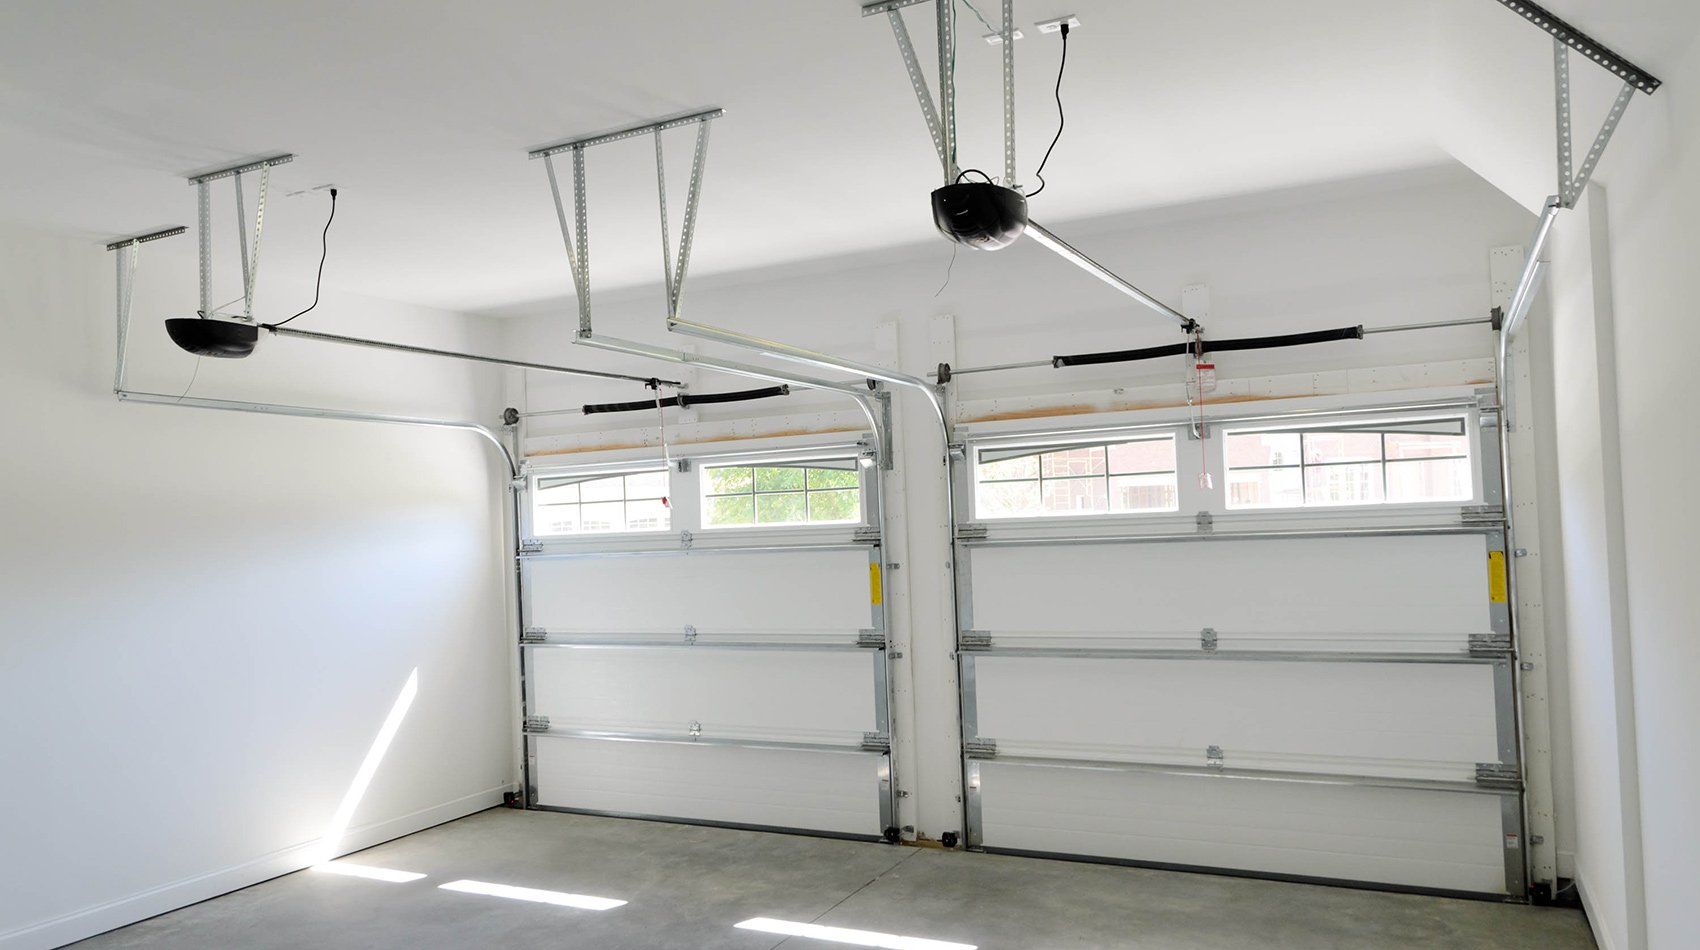 How Led Lights Can Cause Problems With Your Garage Door Opener